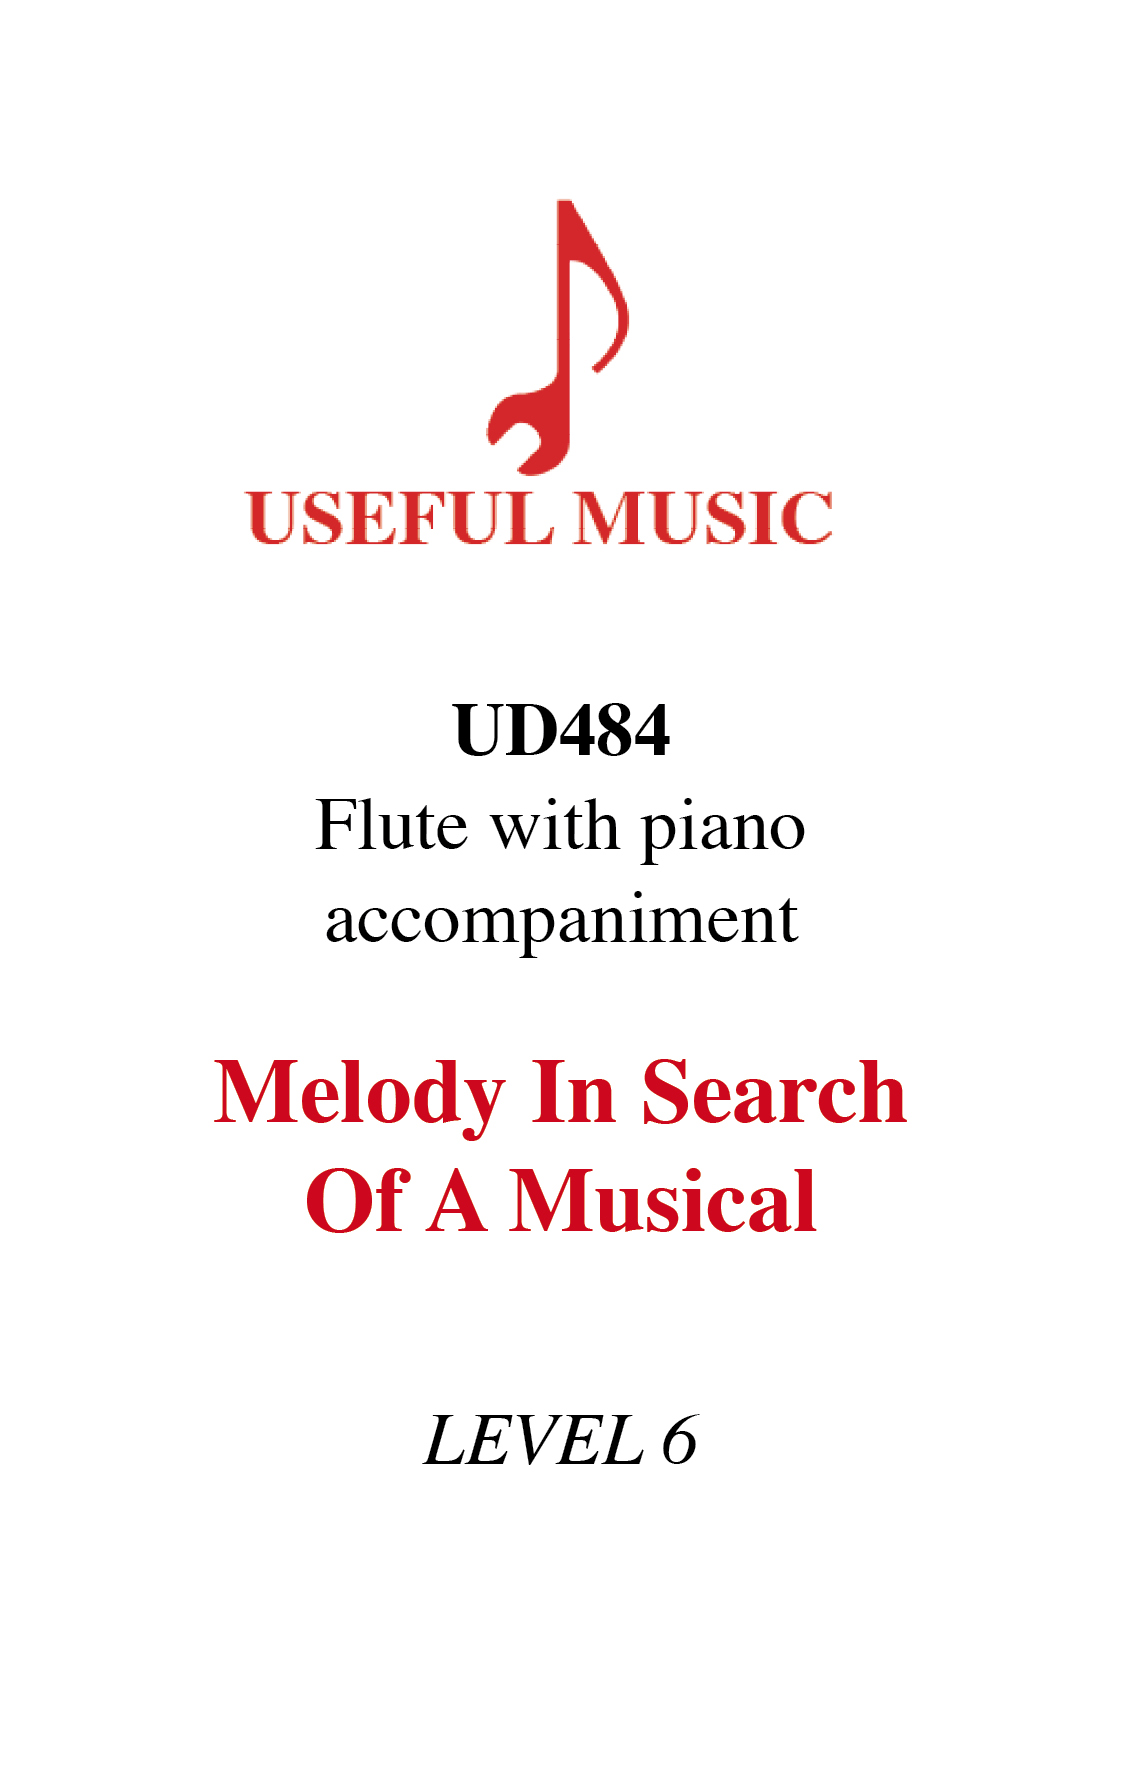 Melody in Search of a Musical - flute with piano accompaniment